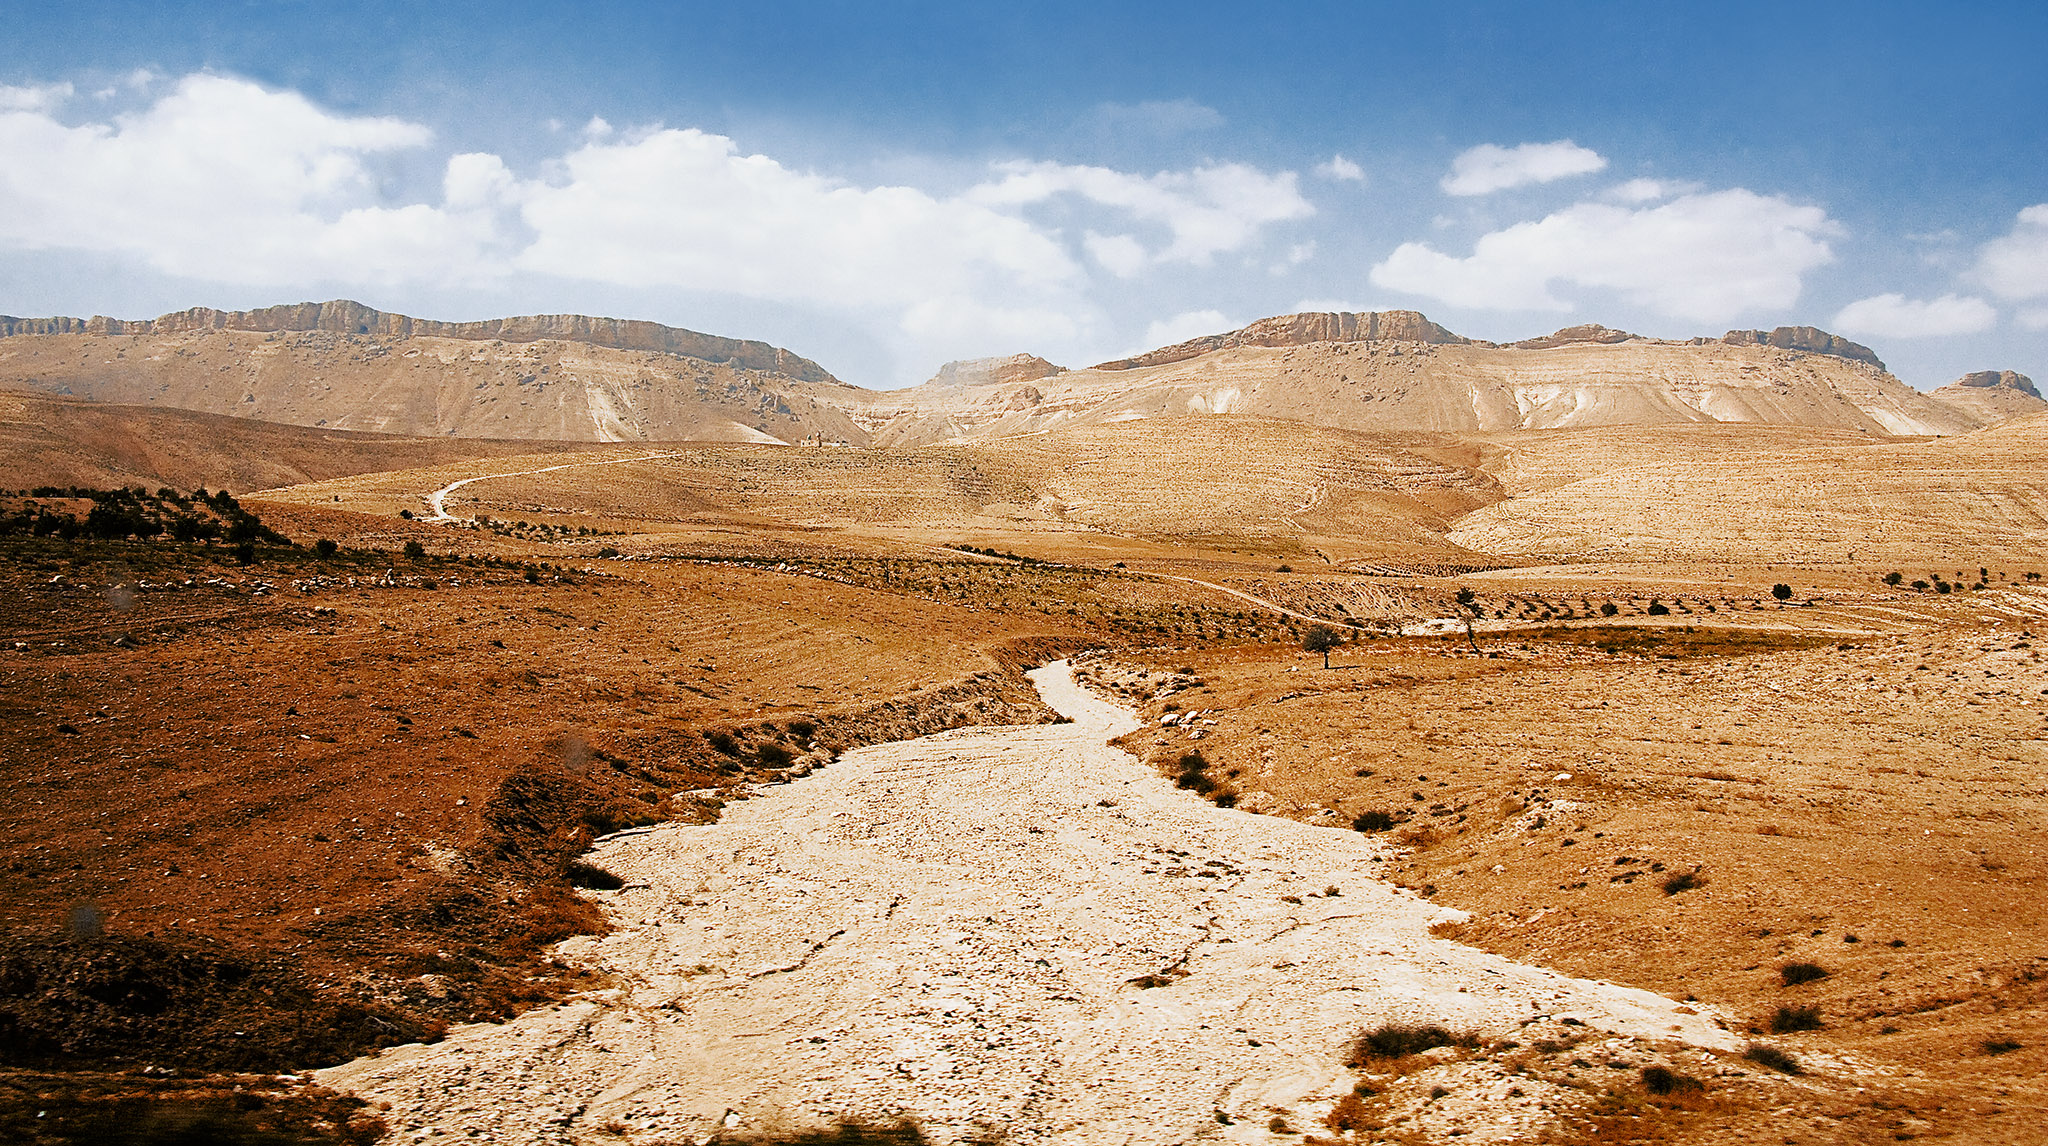 A dry river in Syria. Source: Creative Commons, Flickr